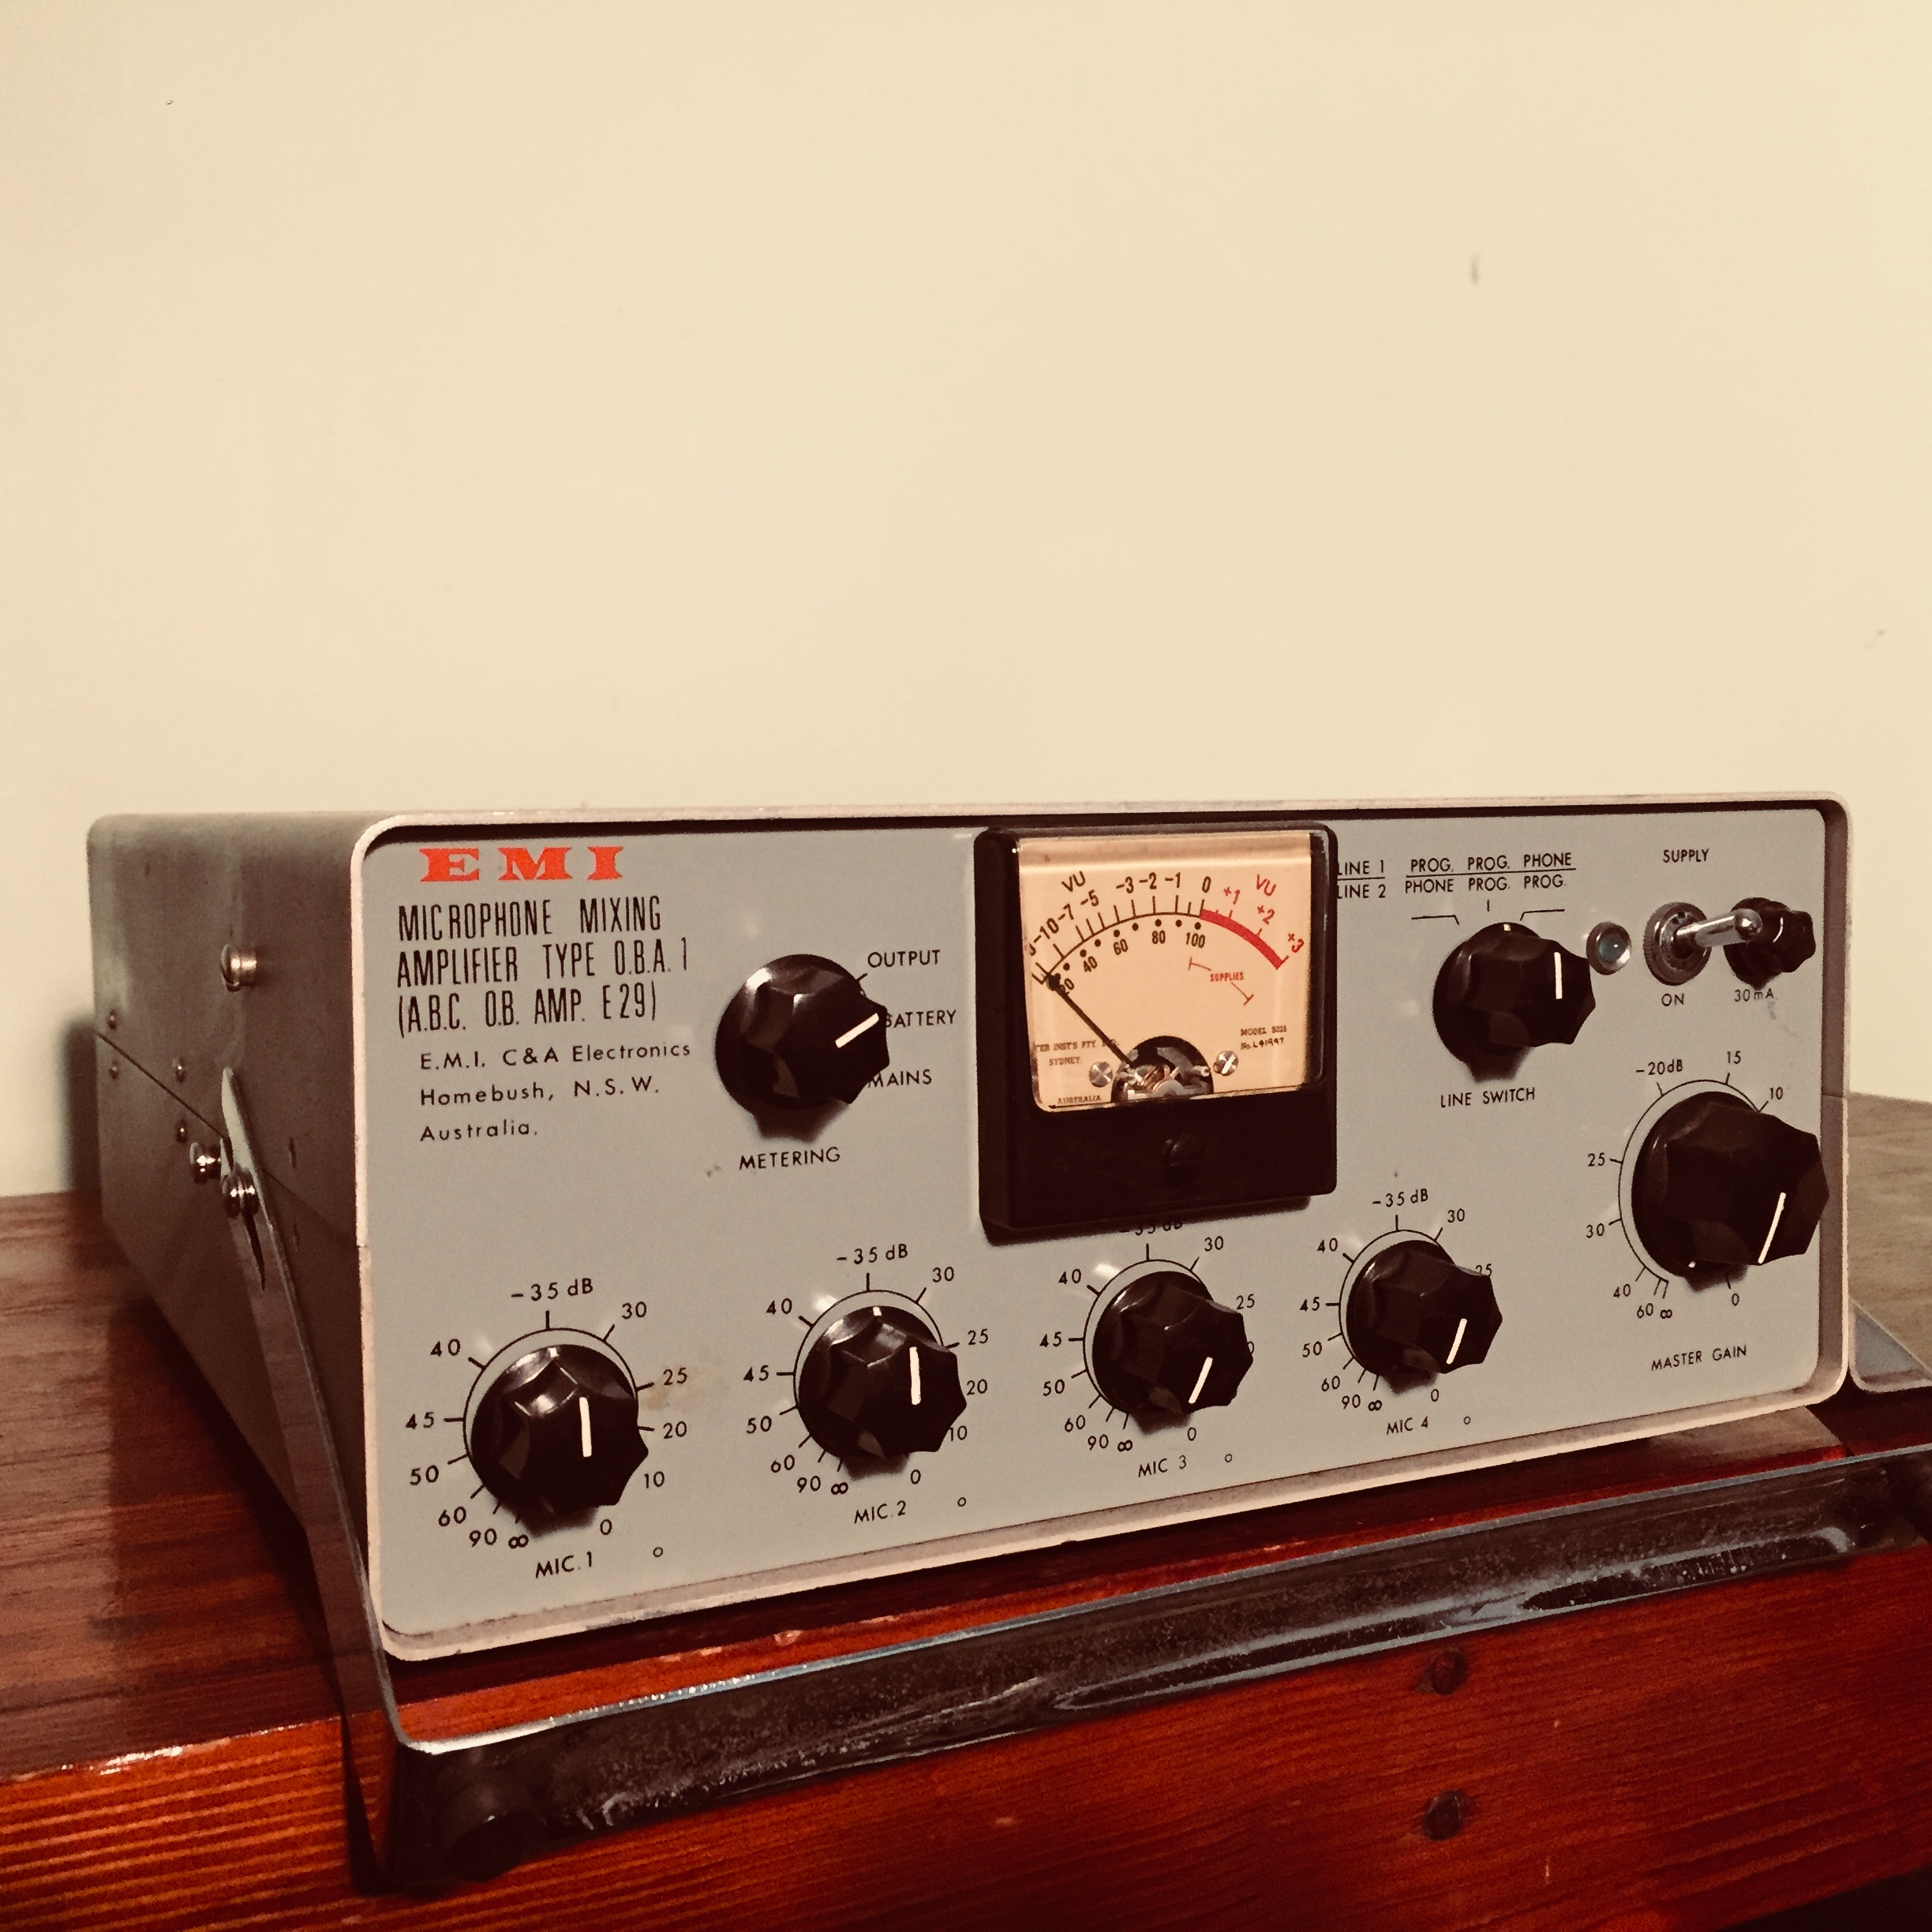 EMI O.B.A.1 - This is a 4-channel microphone preamp dating from around the late 60's / early 70's I would guess. Interestingly, it was build right here in Sydney - Homebush to be exact. In fact, I am always driving past it's birthplace - the big Kennards at the end of the M4 motorway used to be the EMI pressing plant and factory. I can remember as a kid driving past when it was a big white building with the giant blue